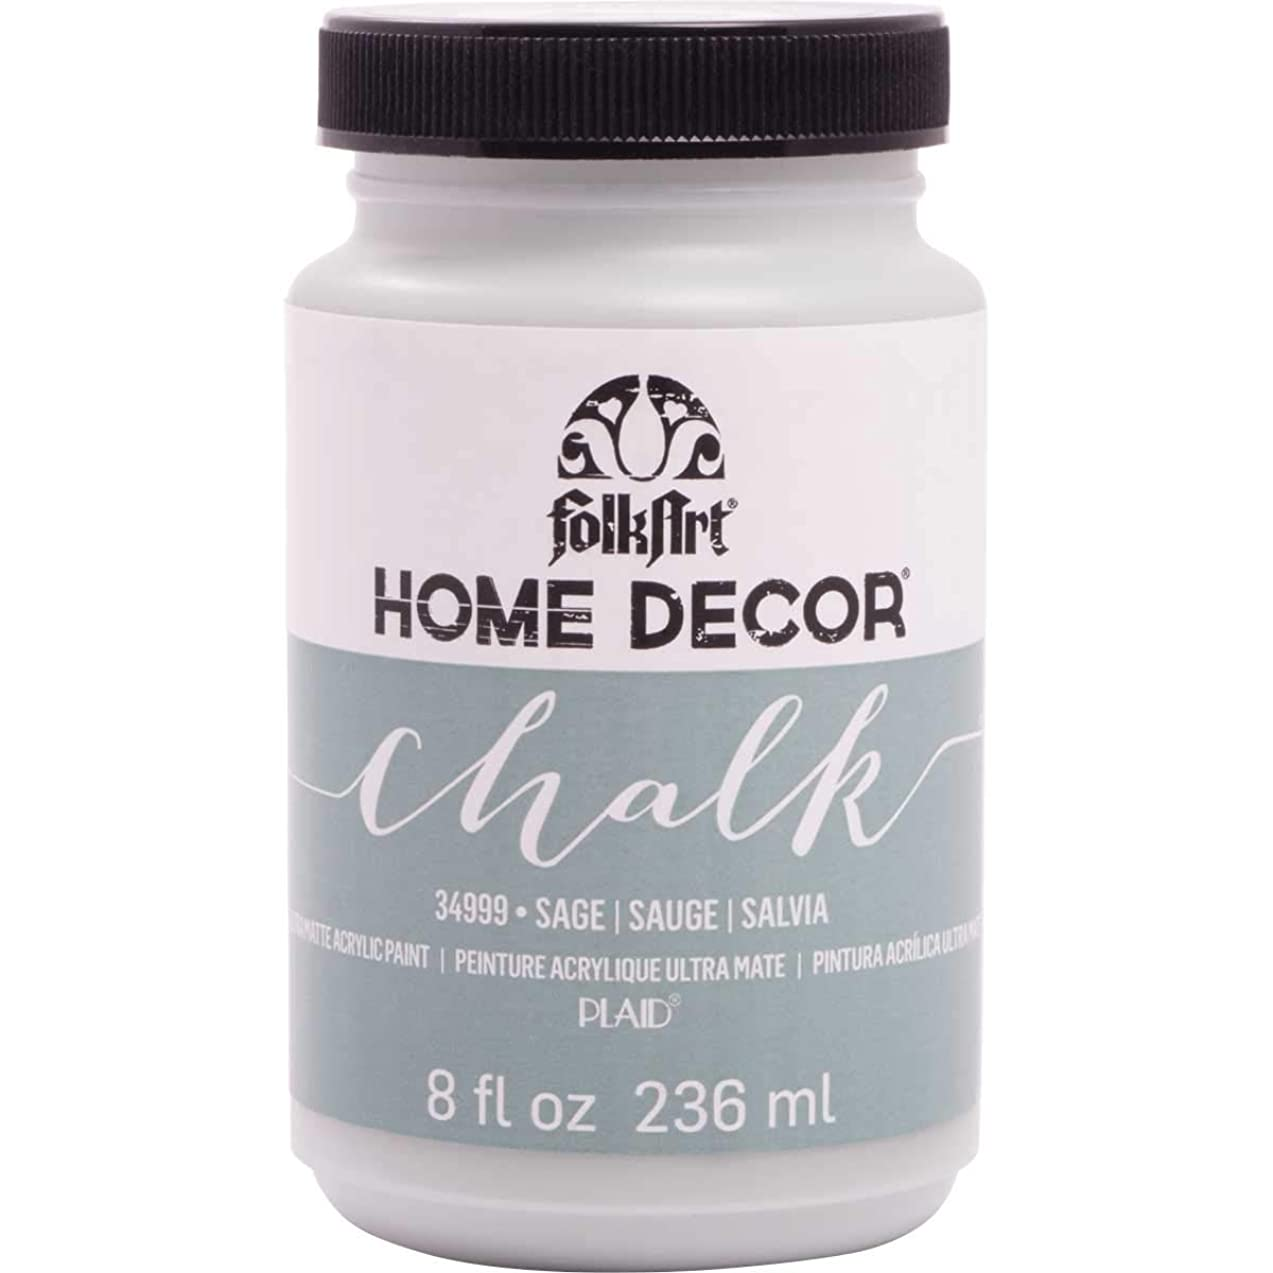 FolkArt 34999 Home Decor Chalk Furniture & Craft Paint in Assorted Colors, 8 Ounce, Sage